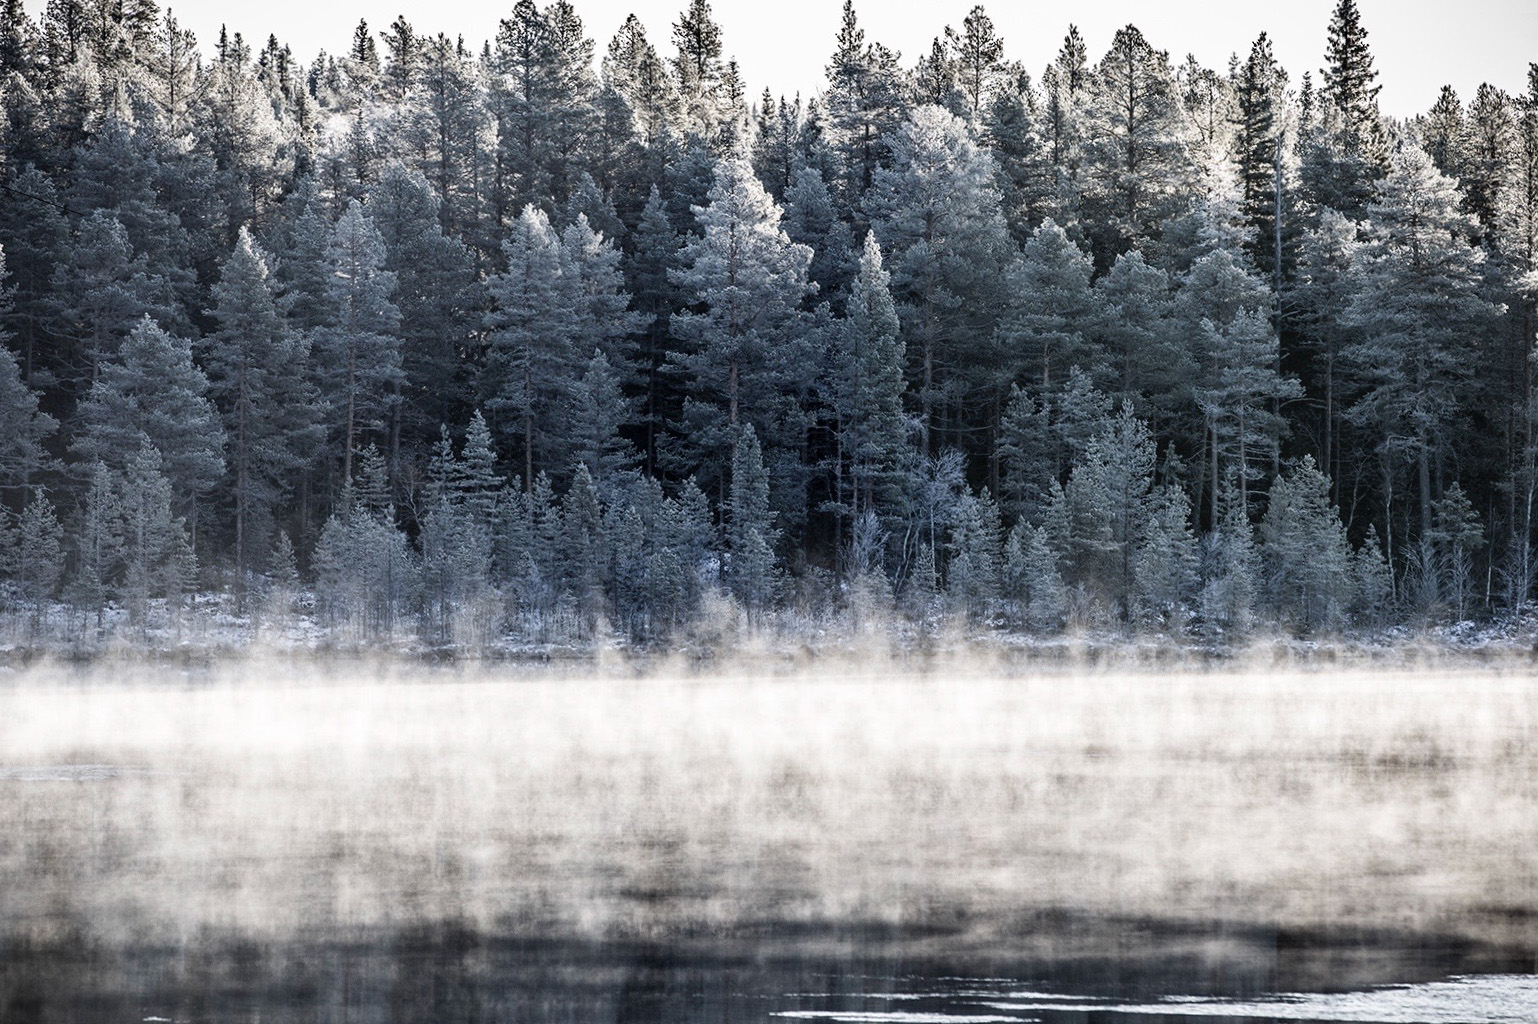 Birch trees line the side of a misty lake